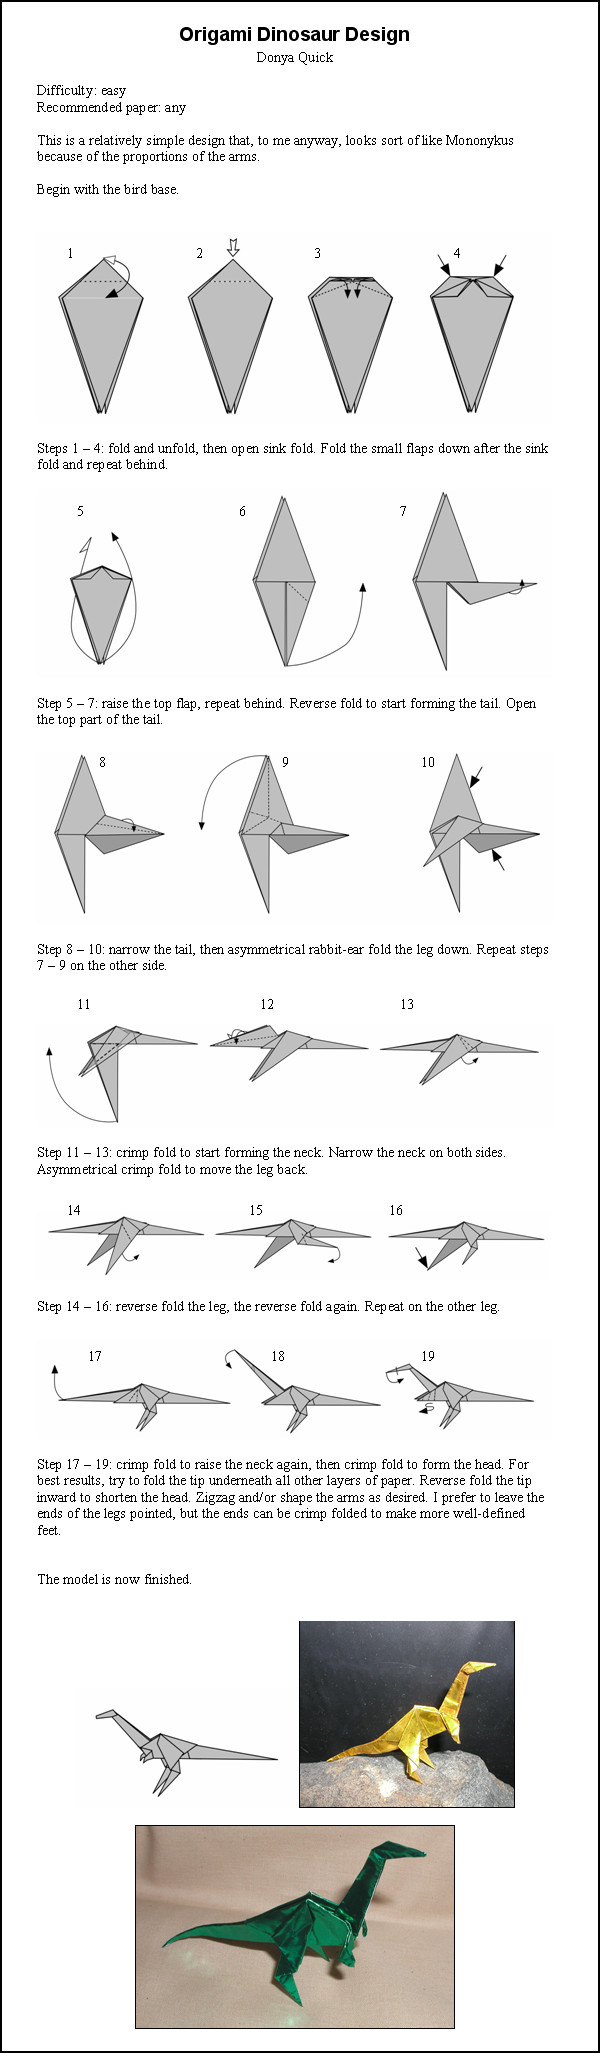 Origami dinosaur instructions by donyaquick on deviantart origami dinosaur instructions by donyaquick origami dinosaur instructions by donyaquick jeuxipadfo Images